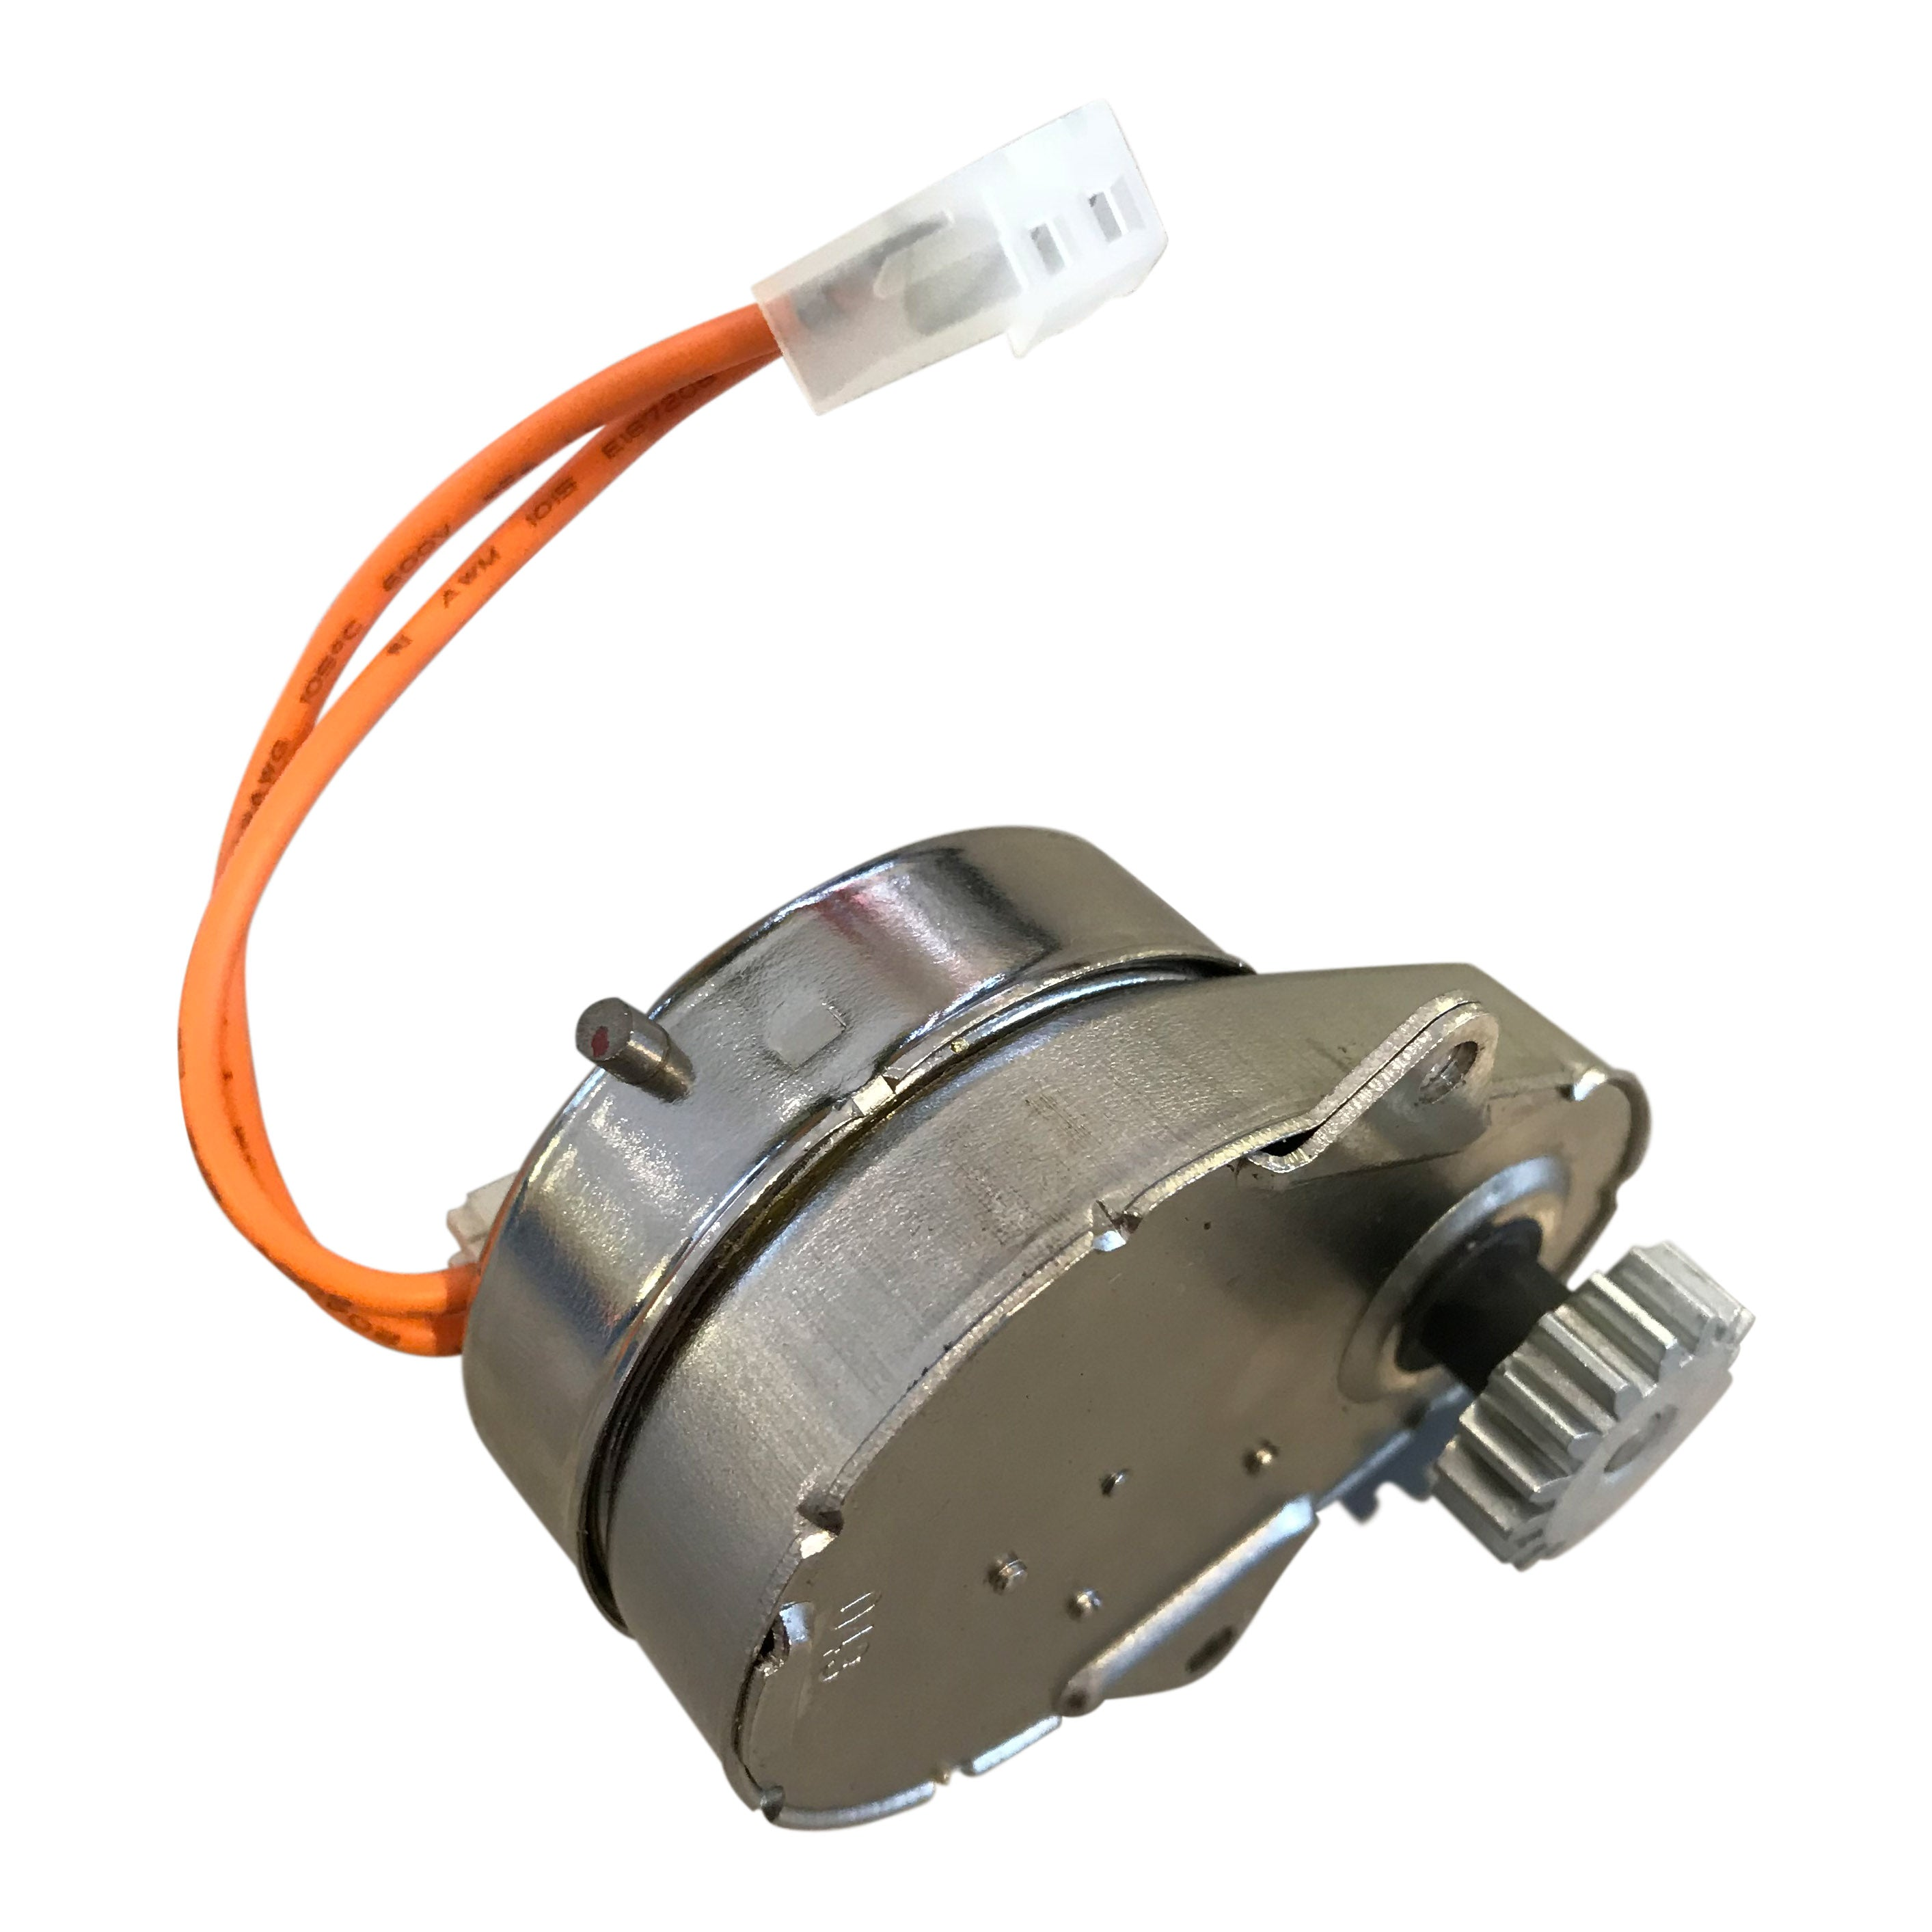 Aquamaster Drive Motor 90217 for AMS 700, 900 or 950